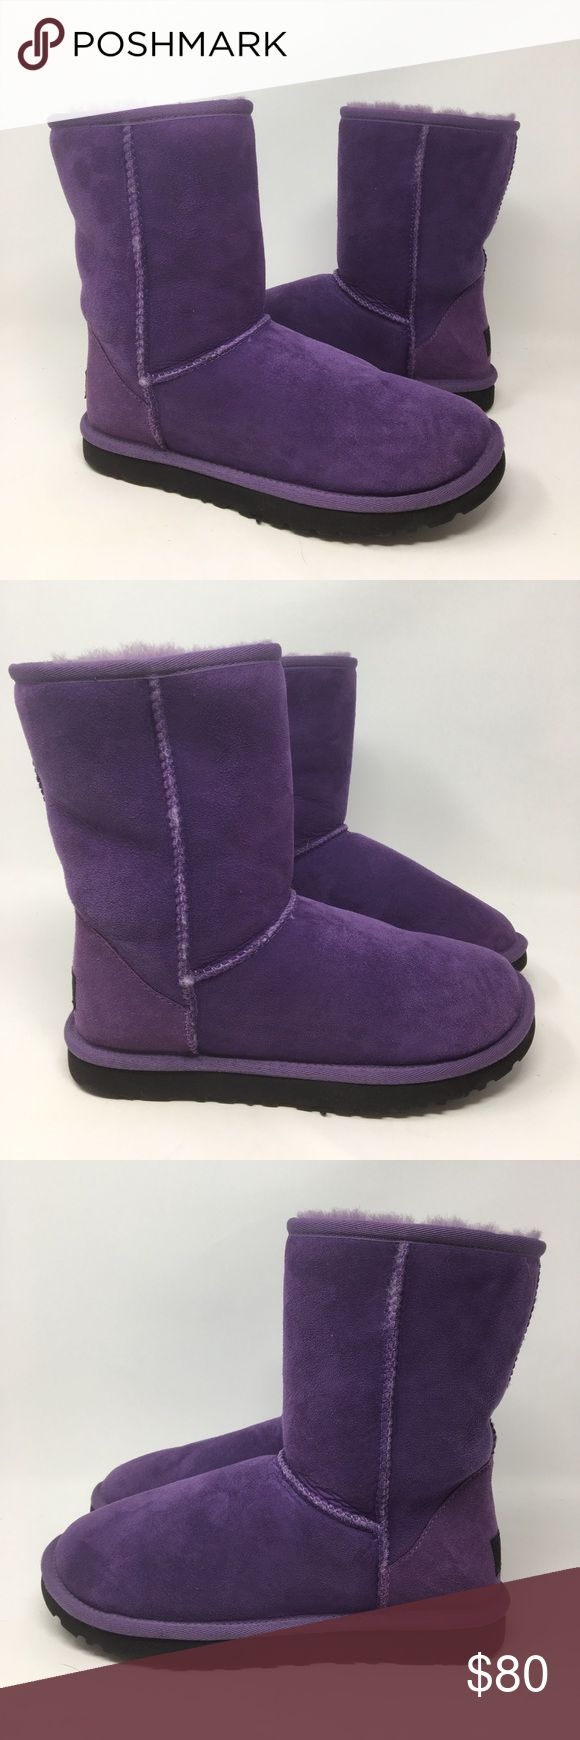 Women's Purple Ugg Classic Short Boots Women's Purple Ugg Classic Short Boots. Size 6. Like new - worn about maybe 1-2 times. PLEASE NO TRADES! UGG Shoes Winter & Rain Boots